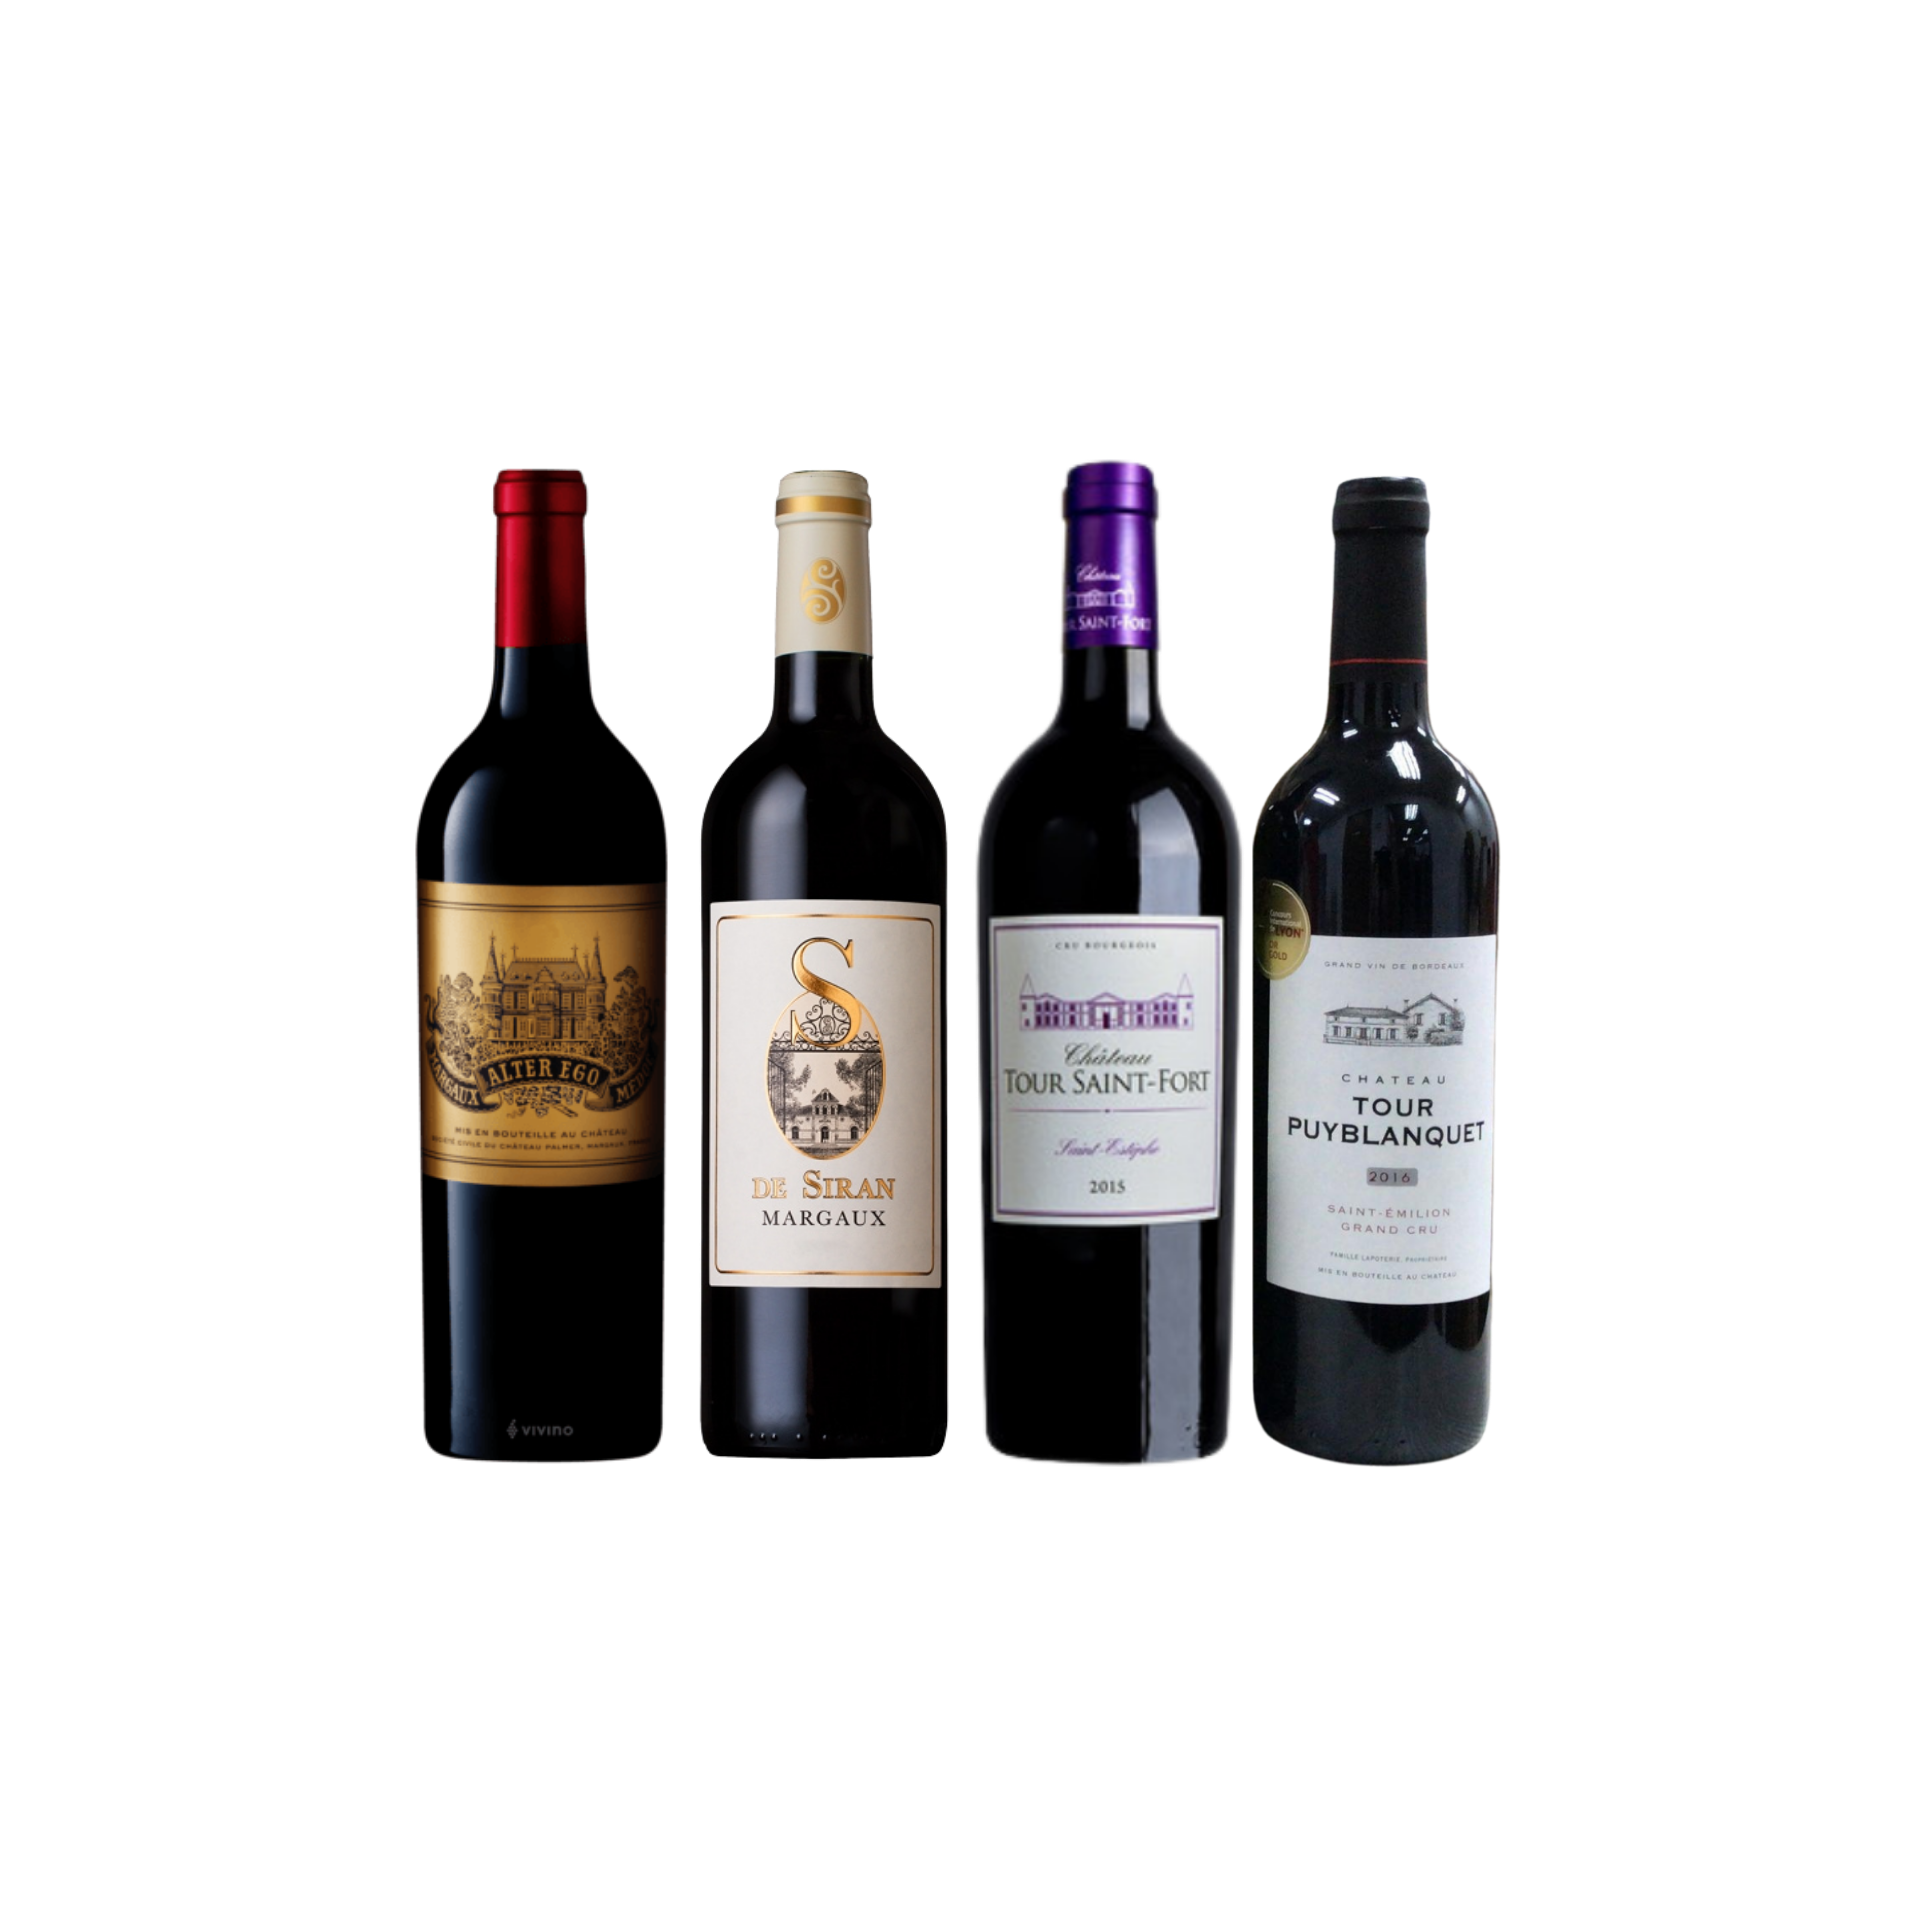 Enjoy 3 Bottles of French Red Wine From Margaux and Saint-Estephe at Only $199 And Top-Up $42 for A Bottle of Saint Emilion Worth $48